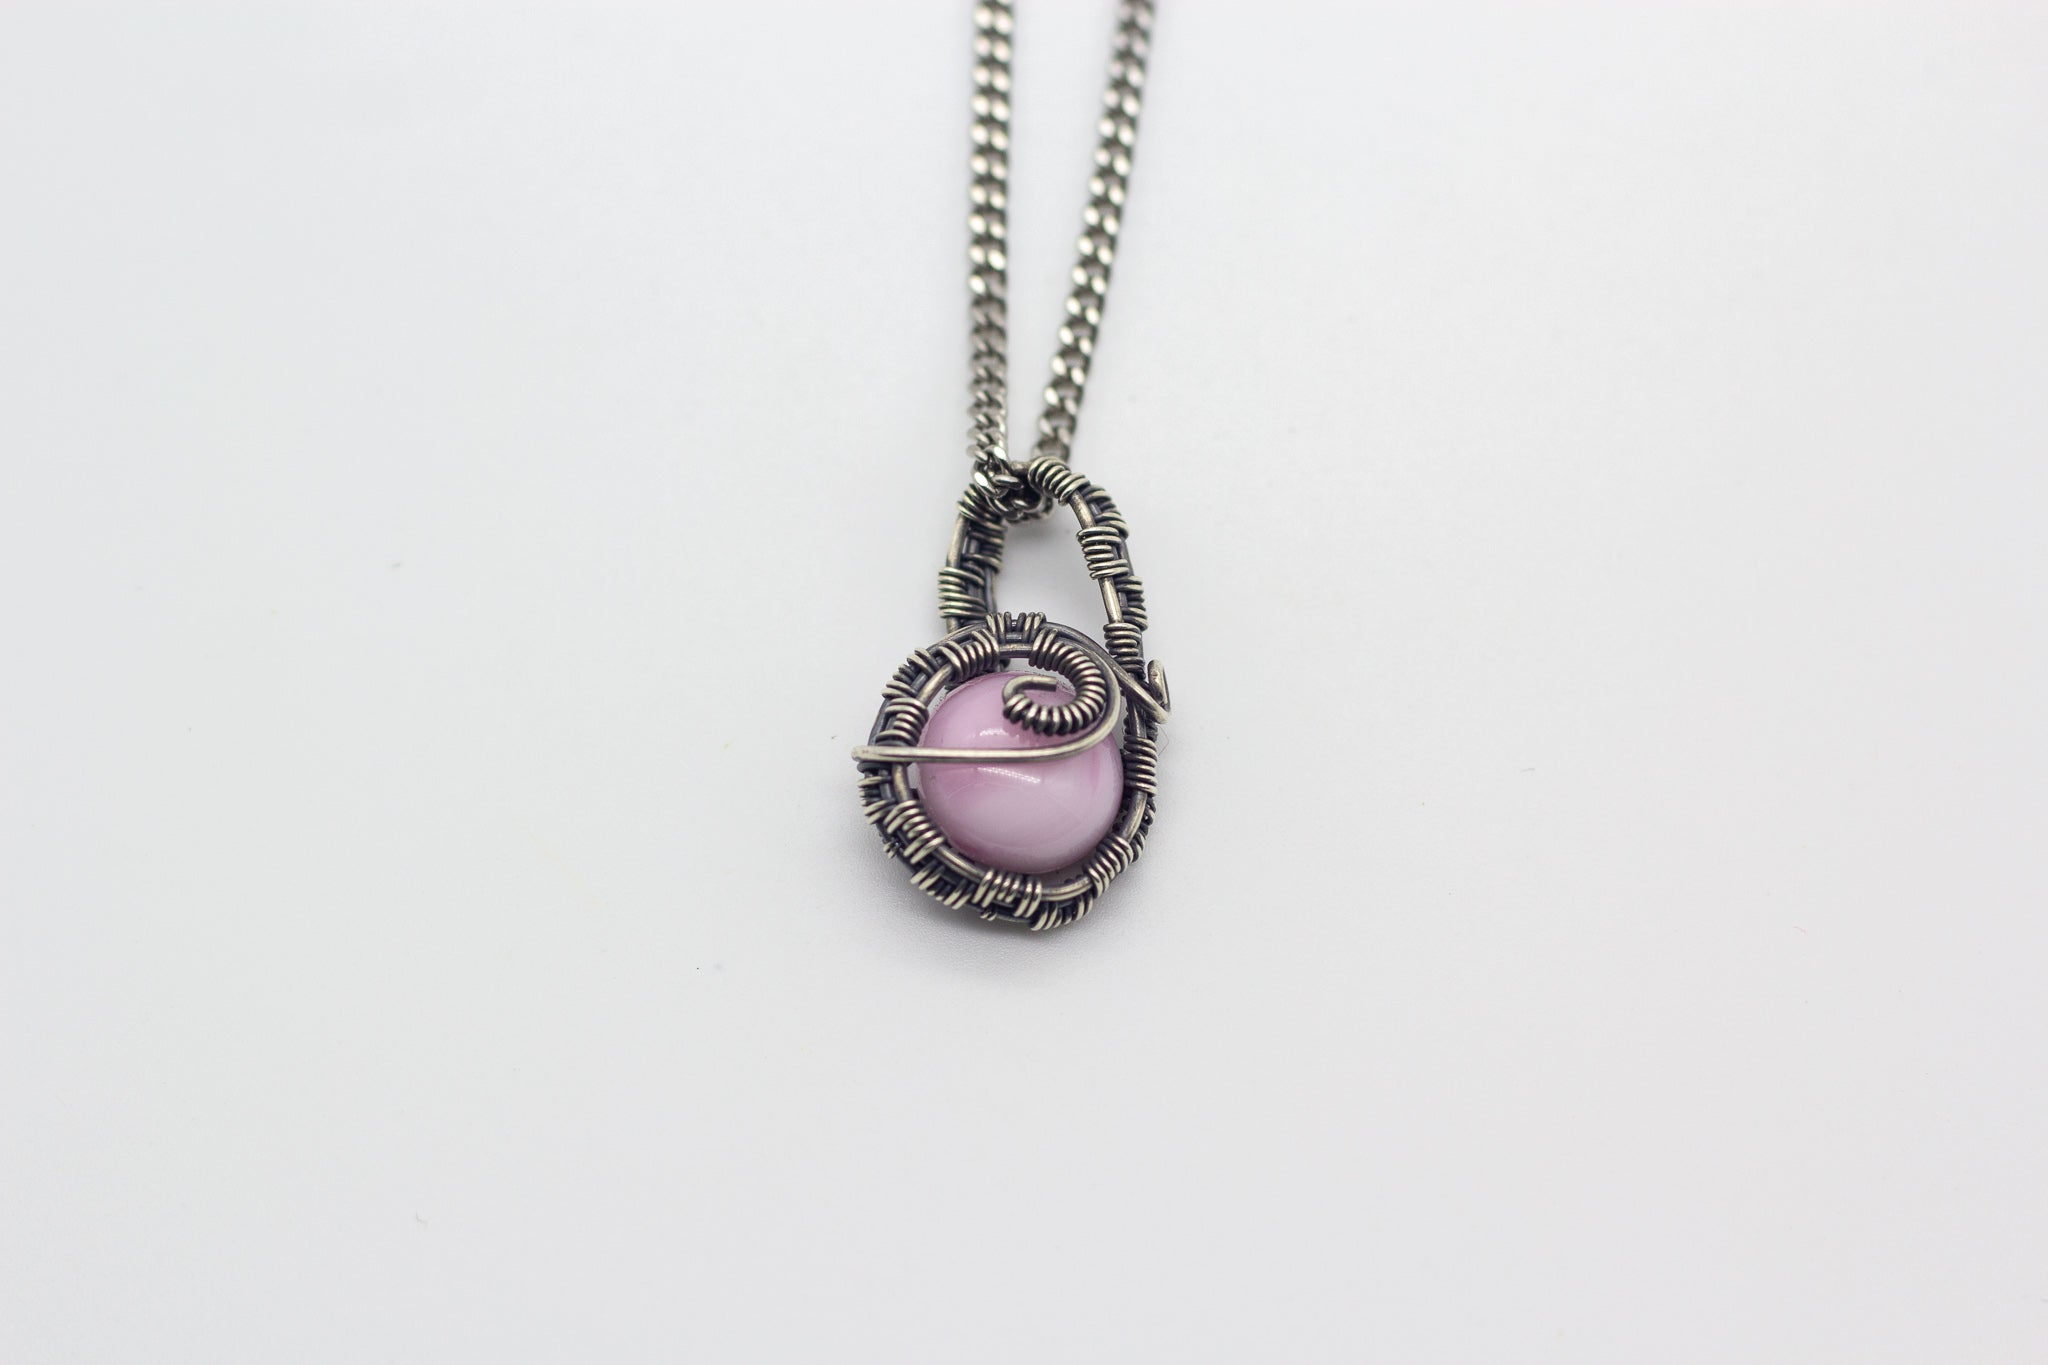 handmade small pendant with pink fused glass and sterling silver wire wrapping